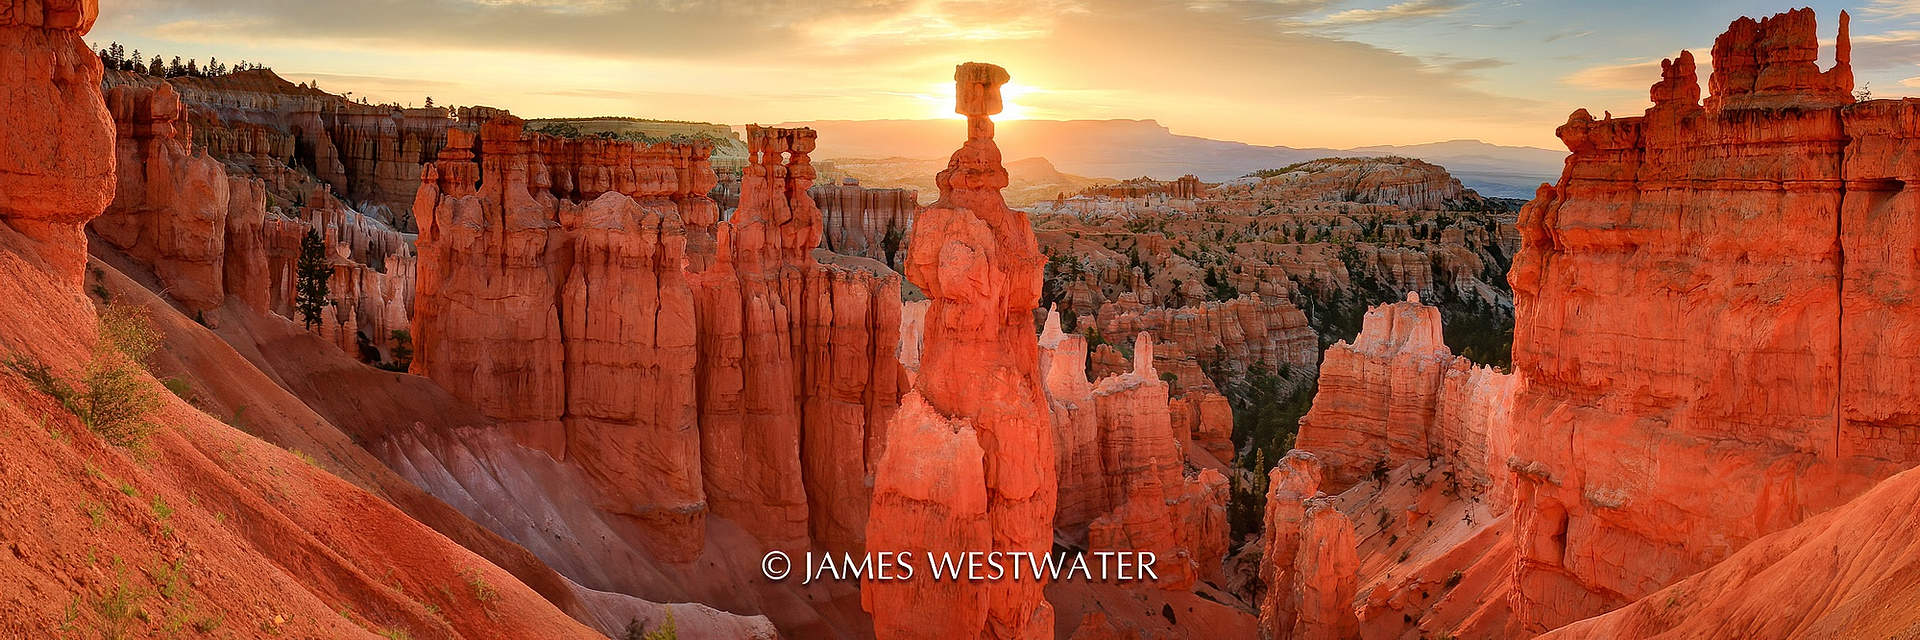 Sunrise, Bryce Canyon National Park, UT